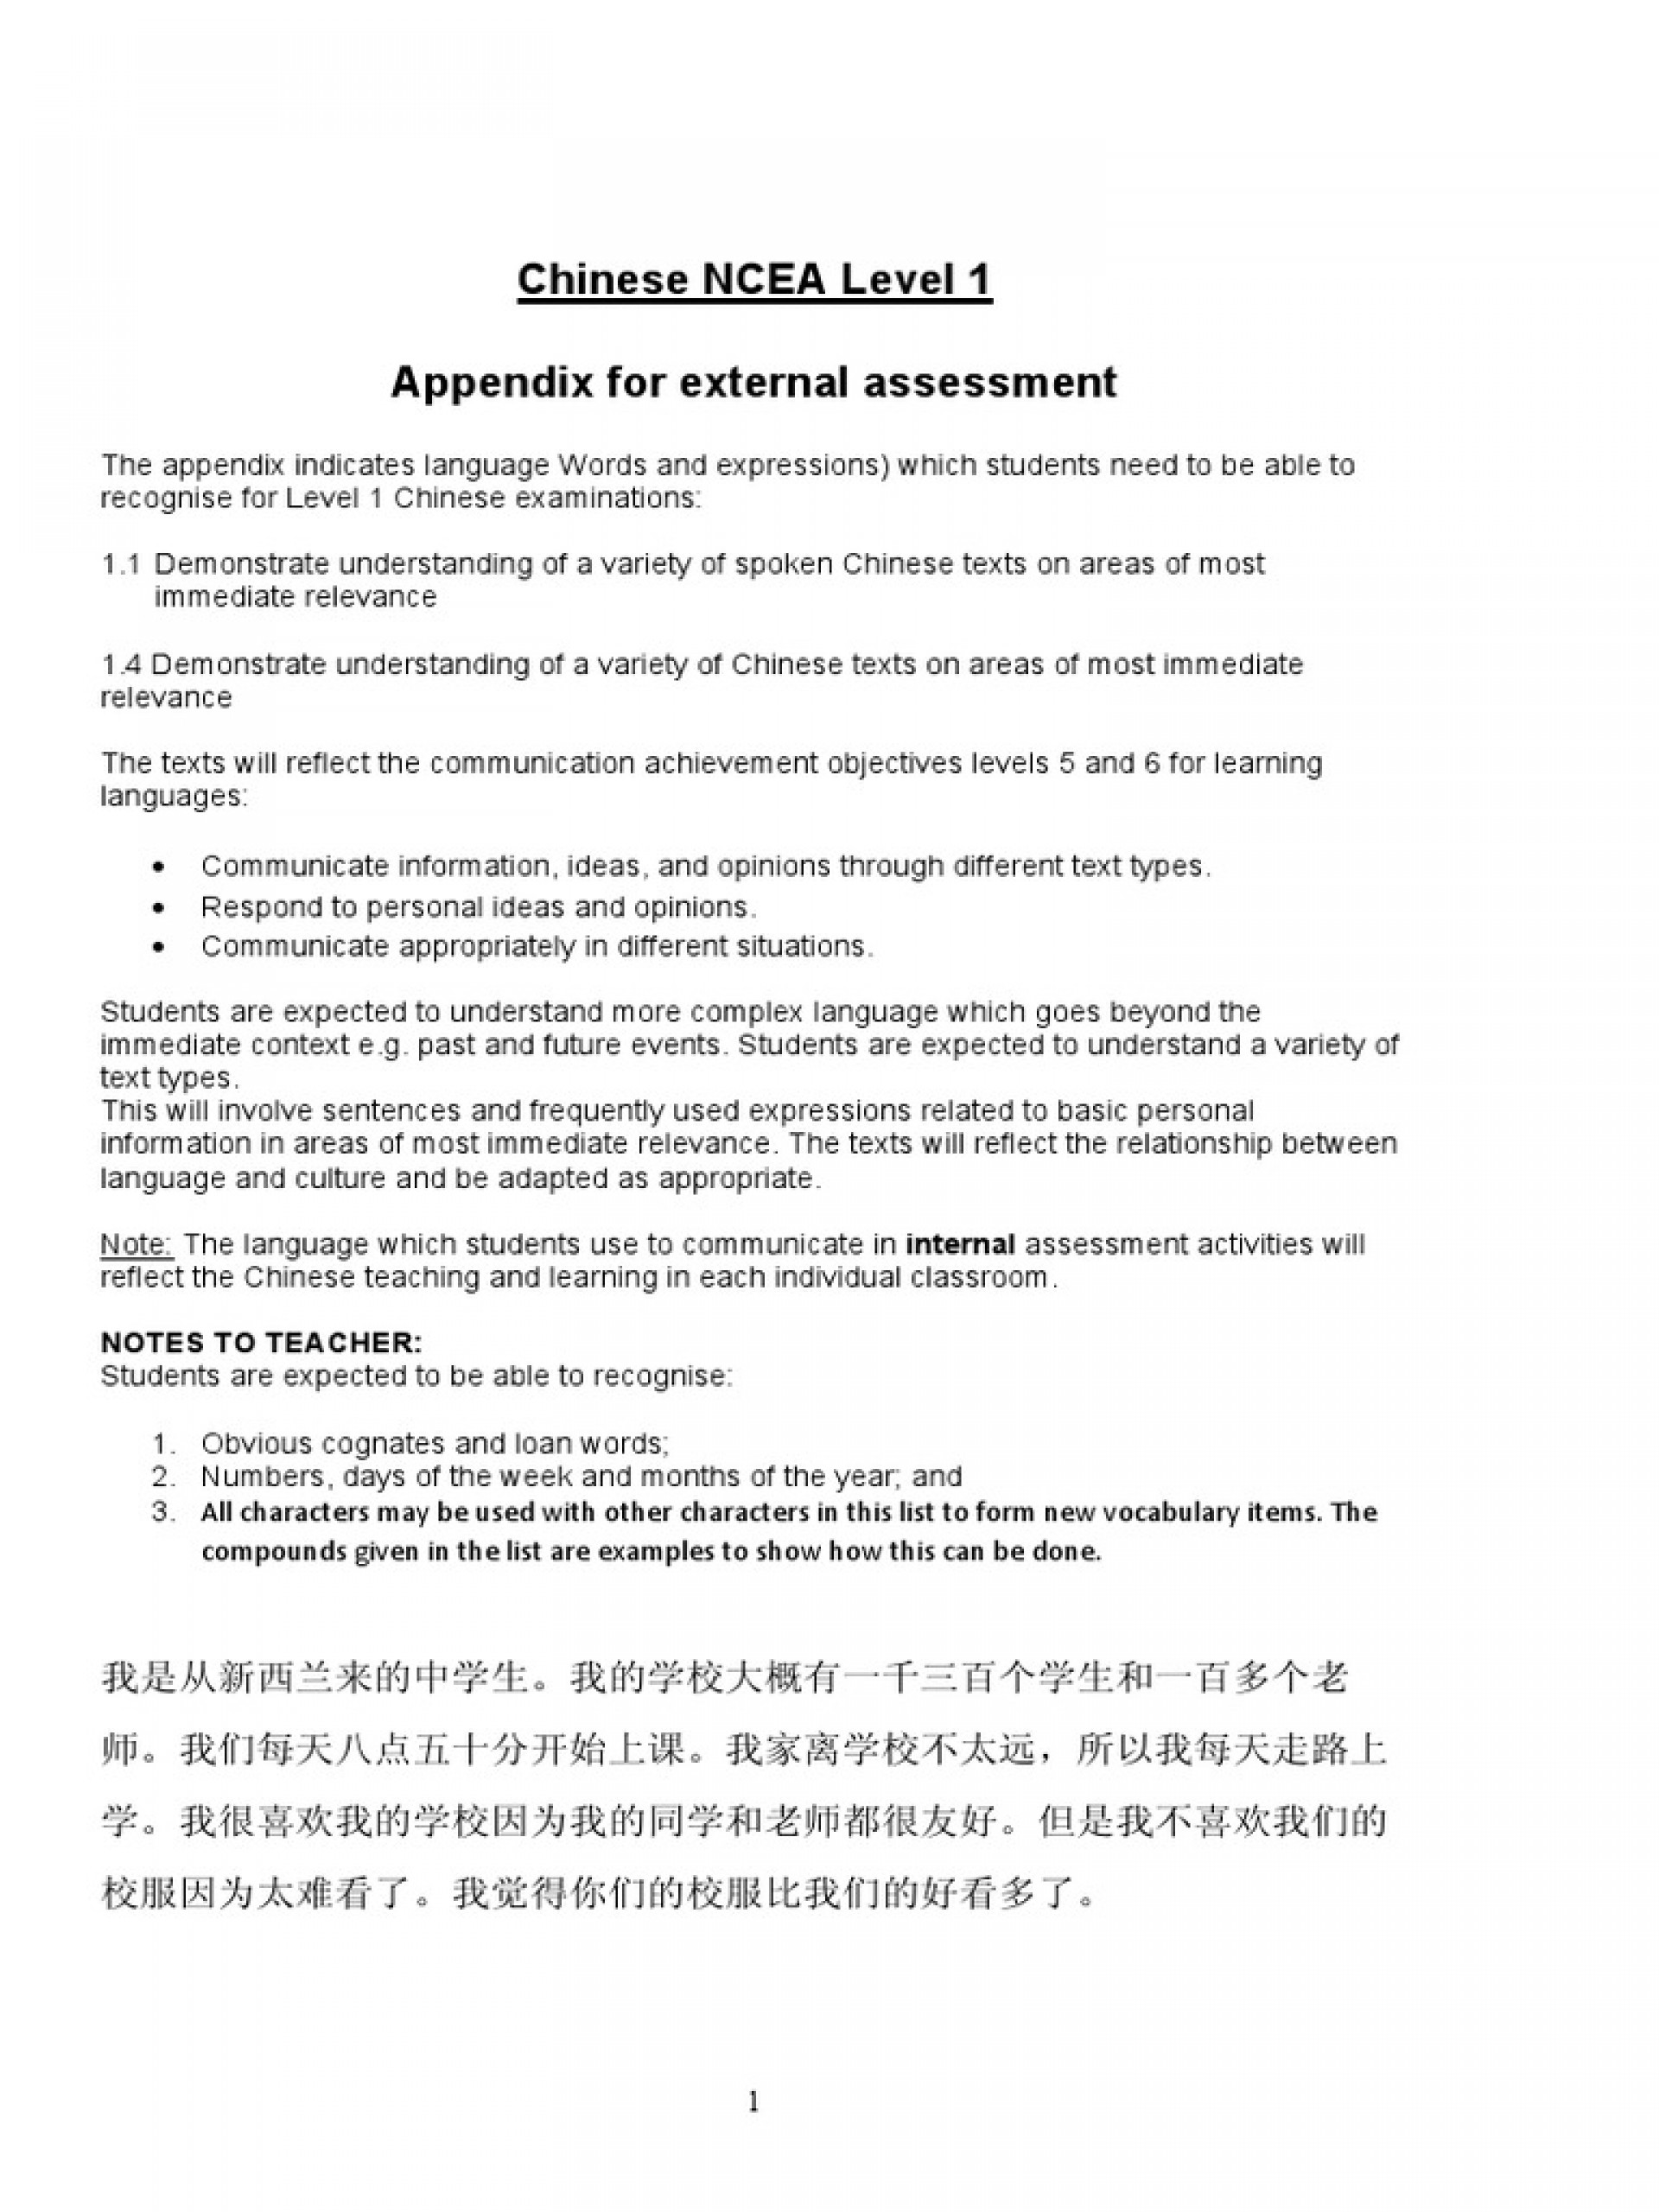 011 Essay Example Chinese Vocab Ncea Level 1 575ee370b6d87ff9888b4638 University Of Washington Remarkable Prompts Bothell Prompt 2017 1920